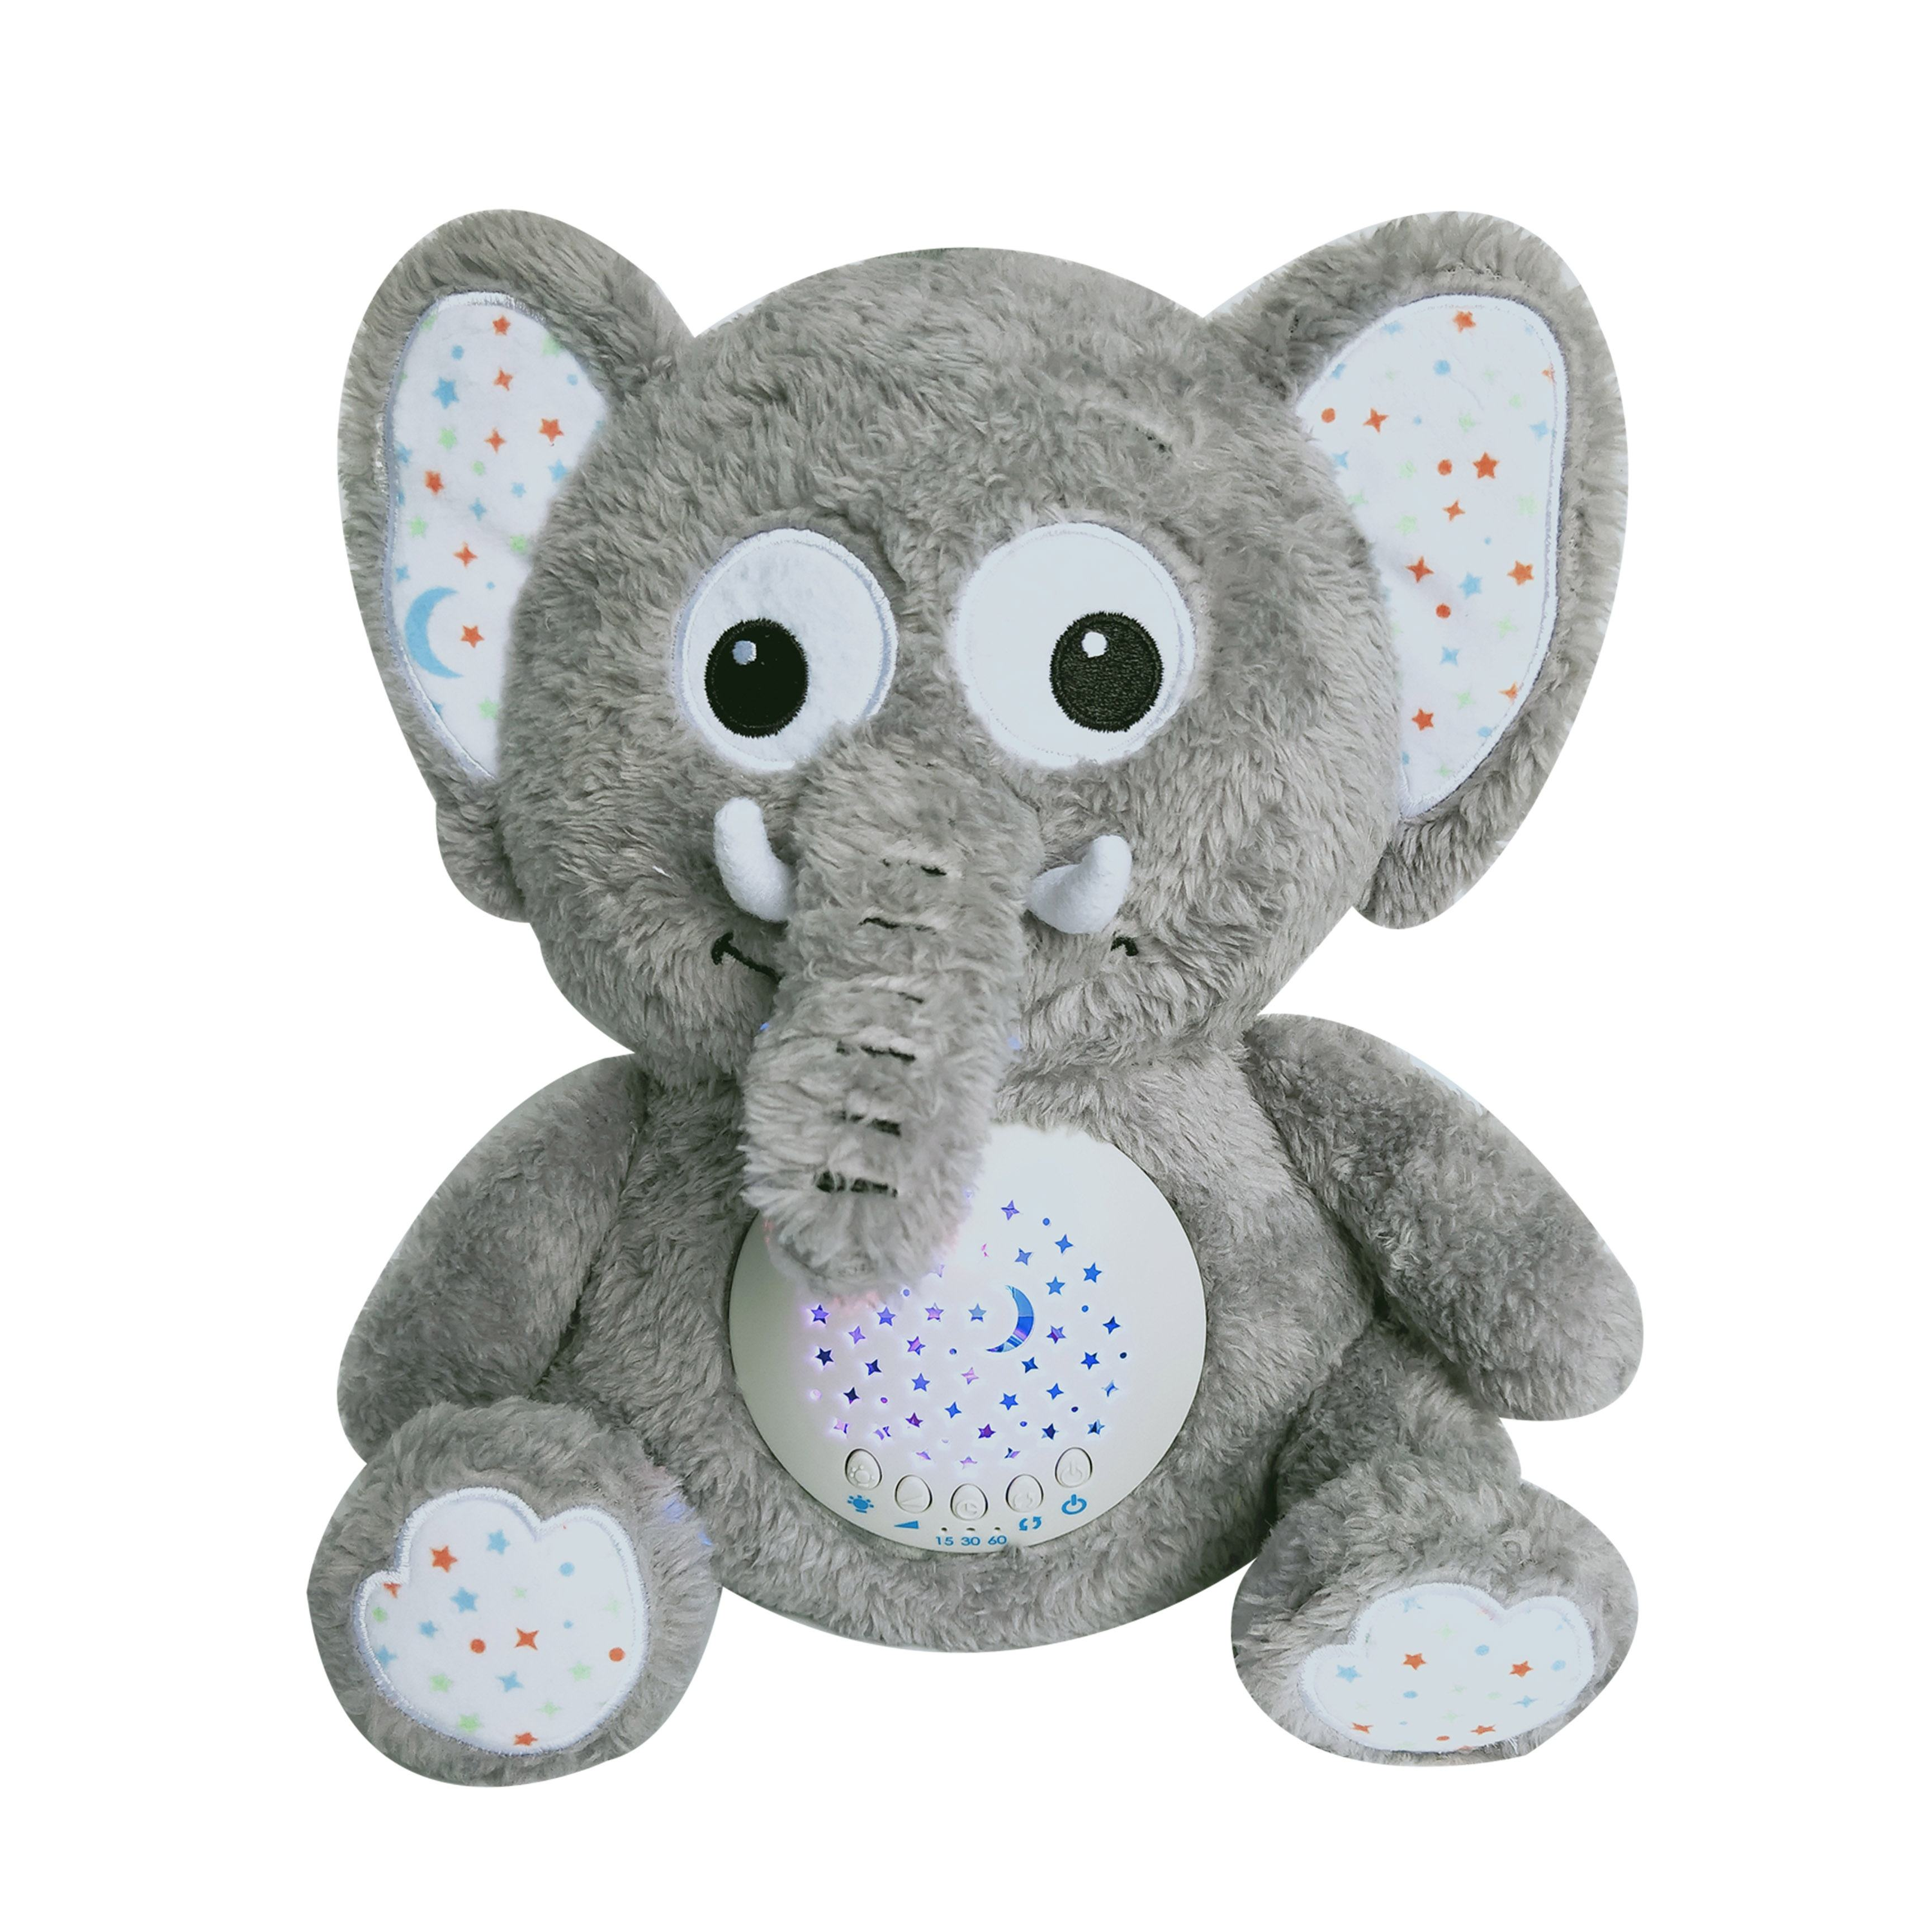 Soothing baby Sleep aid Elephant projector soother natural white sound to lullaby baby sleep animal stuffed toy